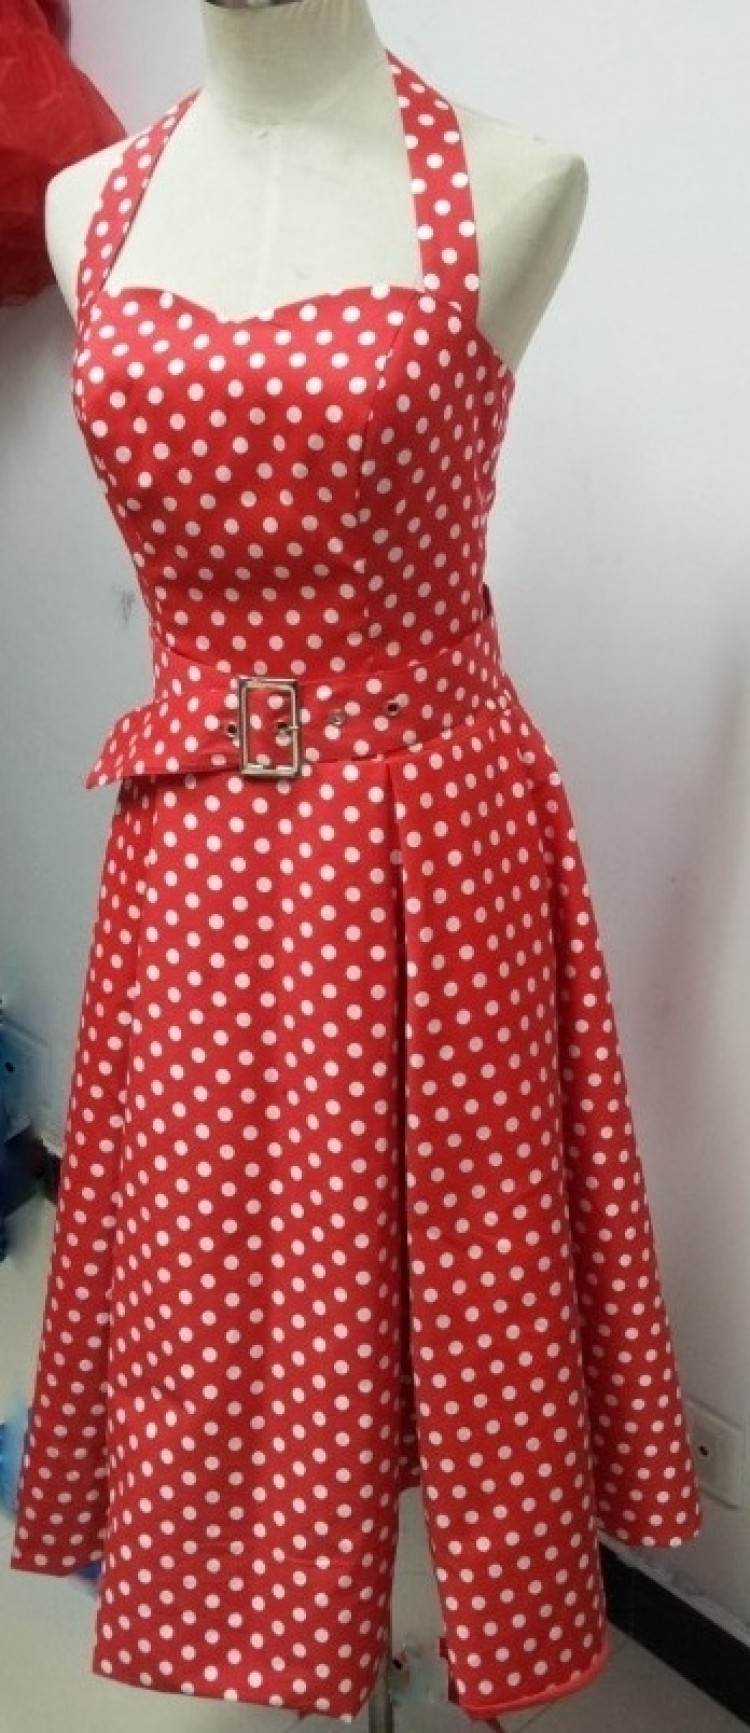 Burlesque Rockabilly Dress